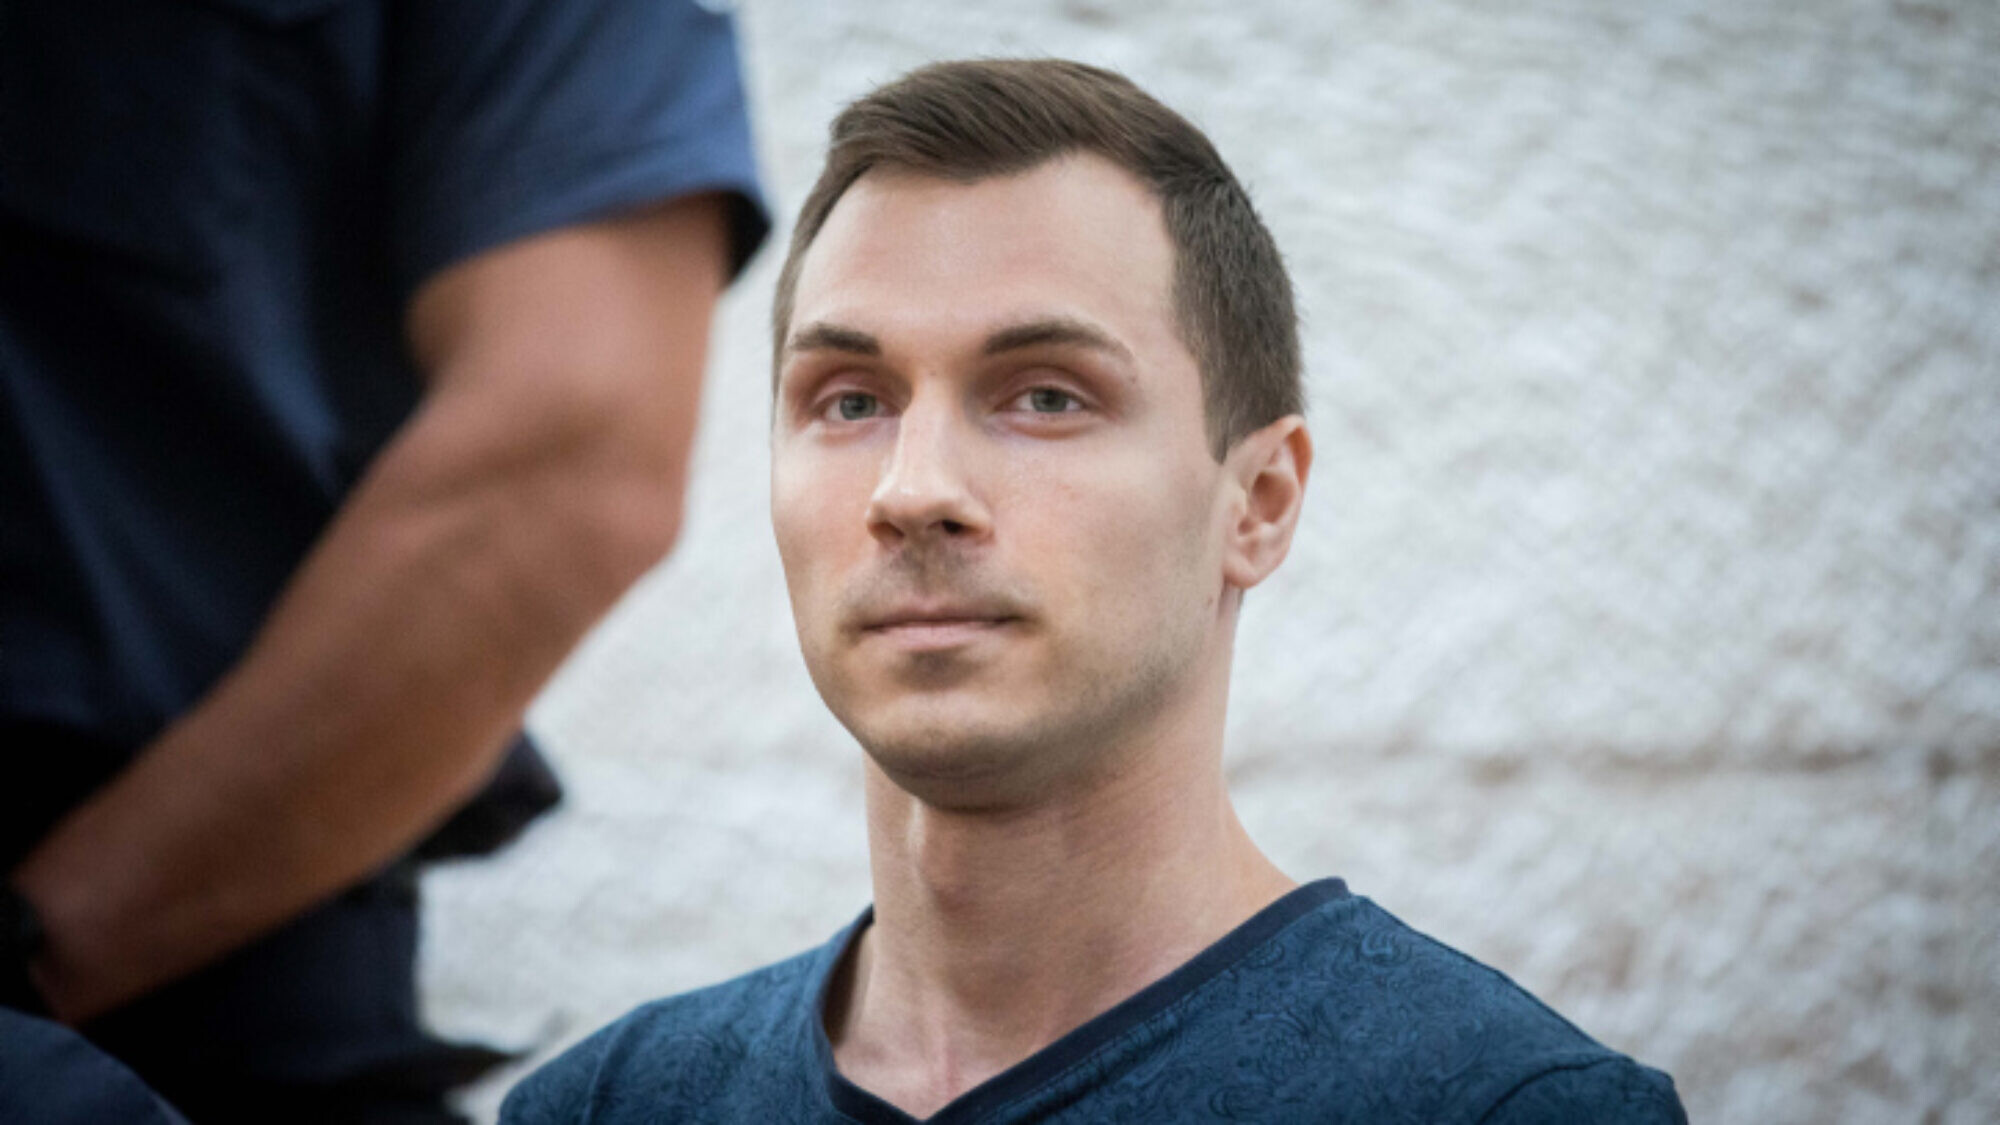 Russian hacker Alexei Burkov extradited to US from Israel - JNS.org